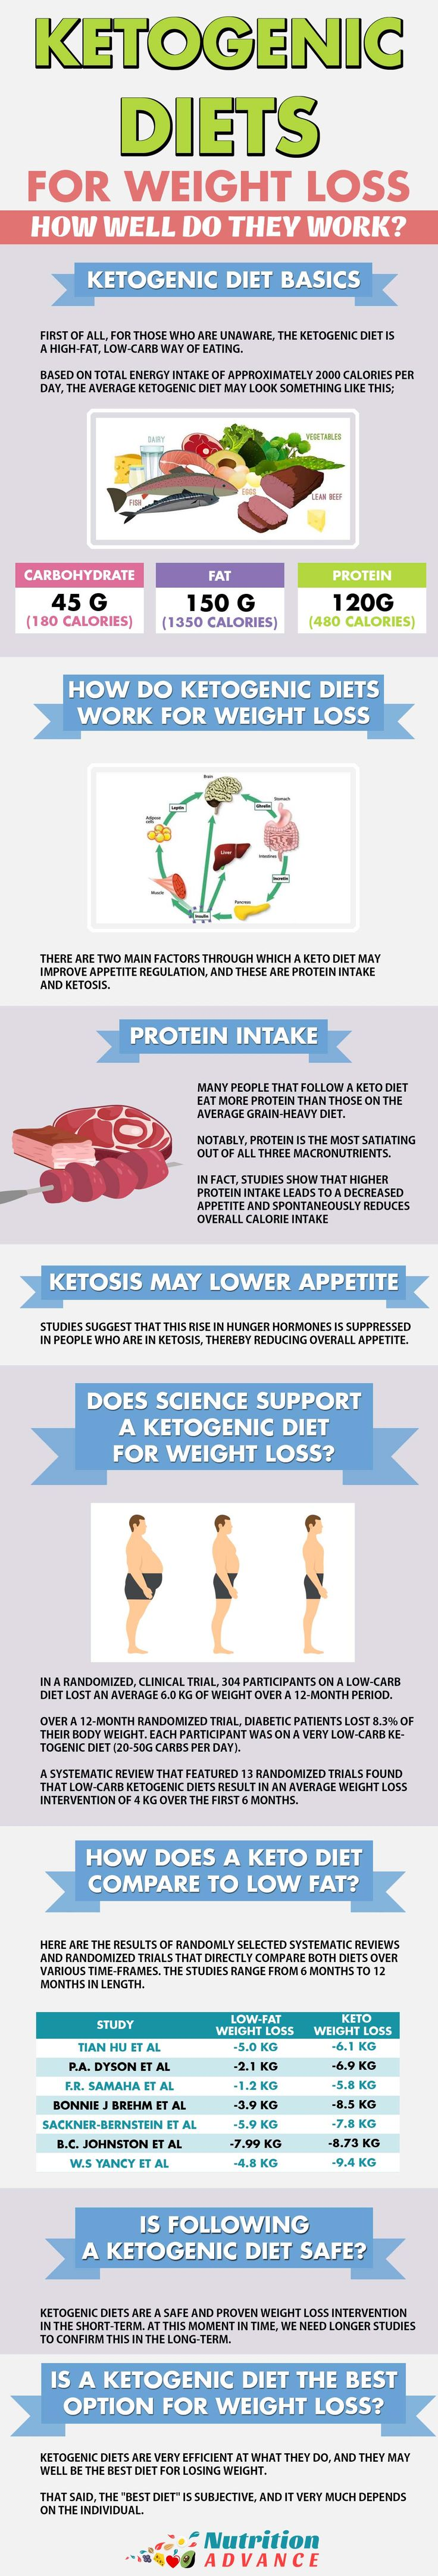 Ketogenic Diets For Weight Loss | Keto is a very low carb diet that is enjoying ...